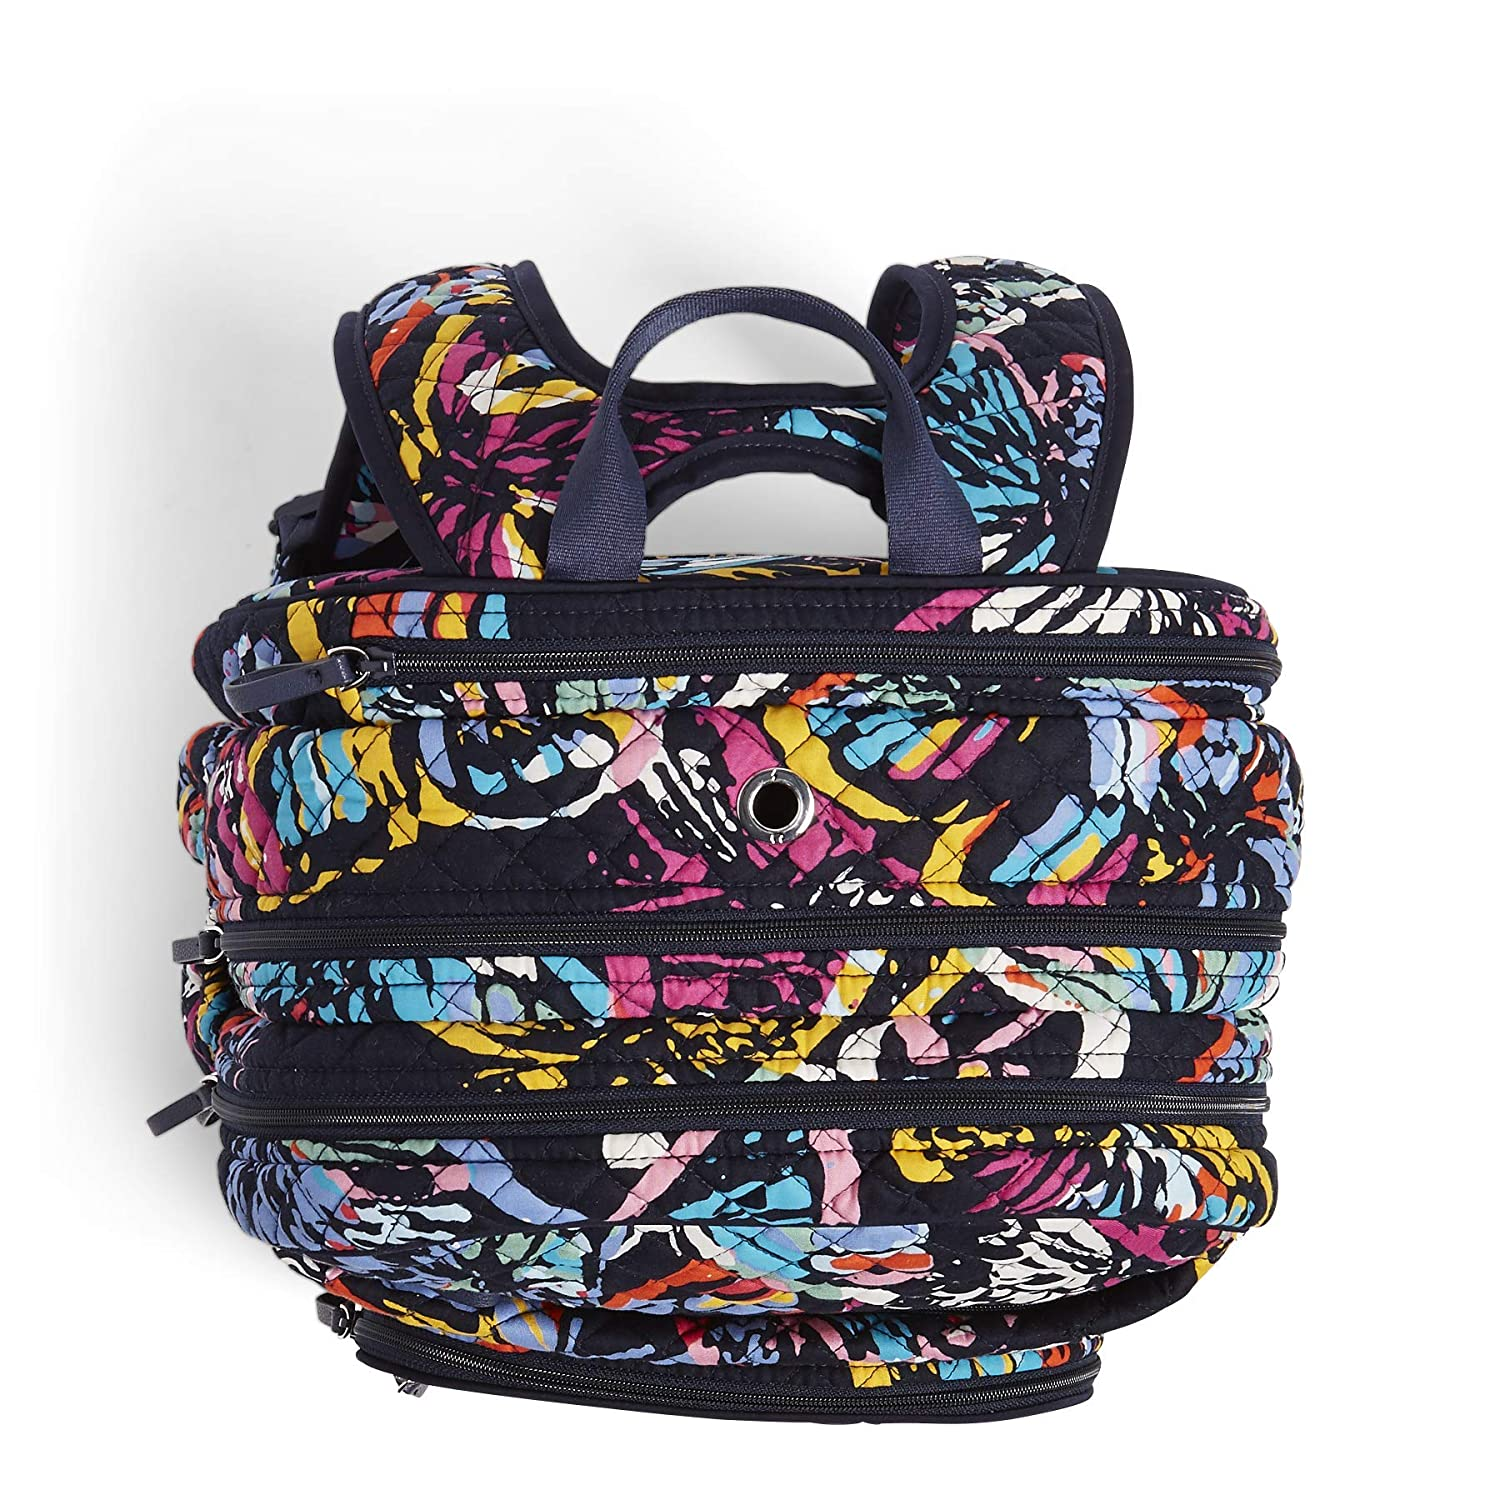 4950556e8 Amazon.com: Vera Bradley Iconic XL Campus Backpack, Signature Cotton,  butterfly flutter: Clothing